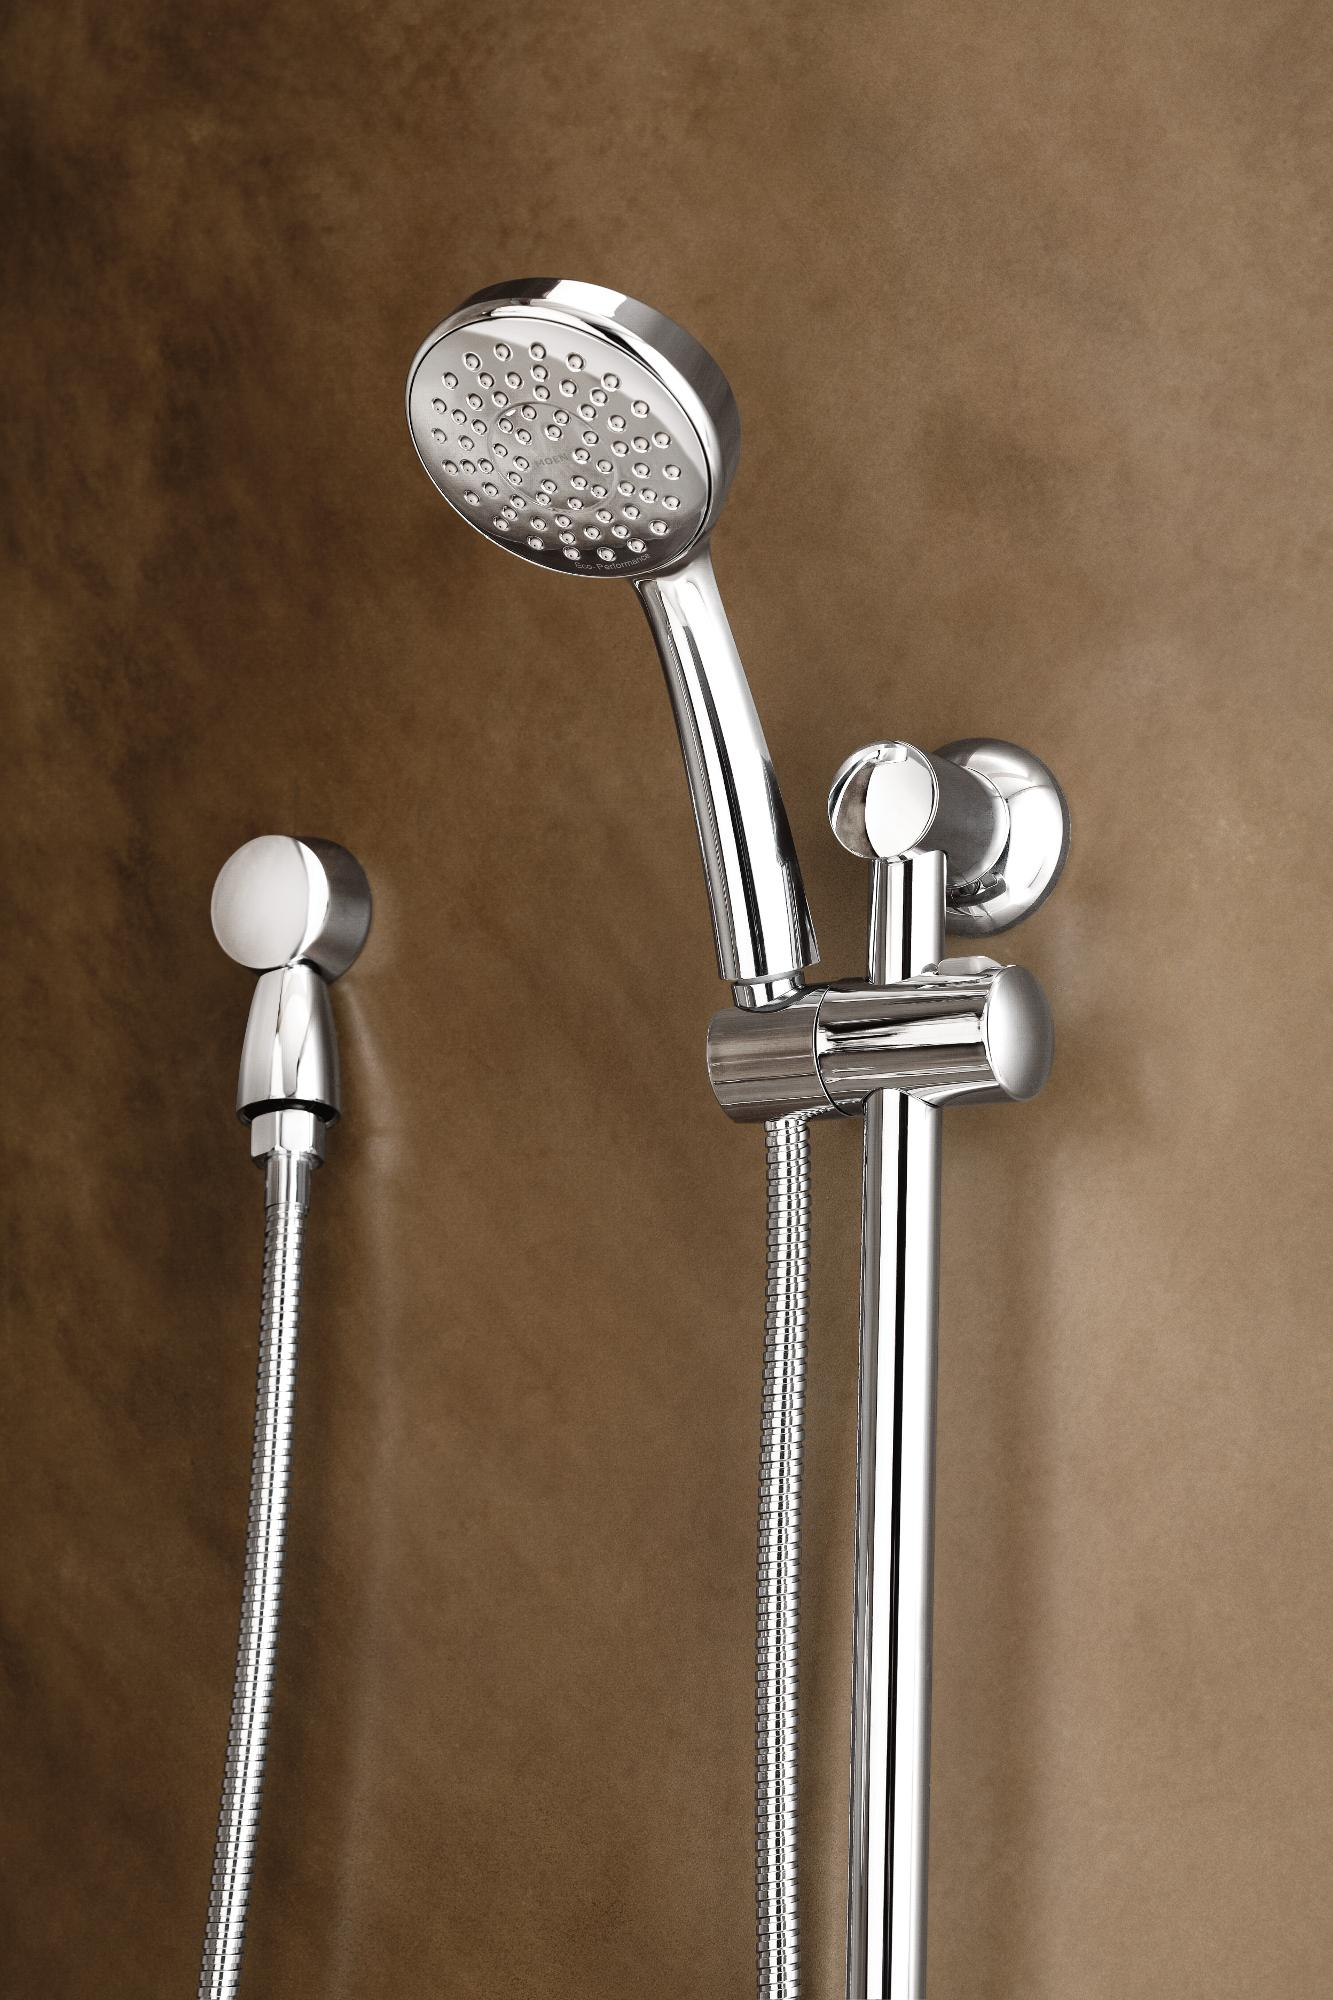 Moen 3868ep Showering Accessories Basic Eco Performance